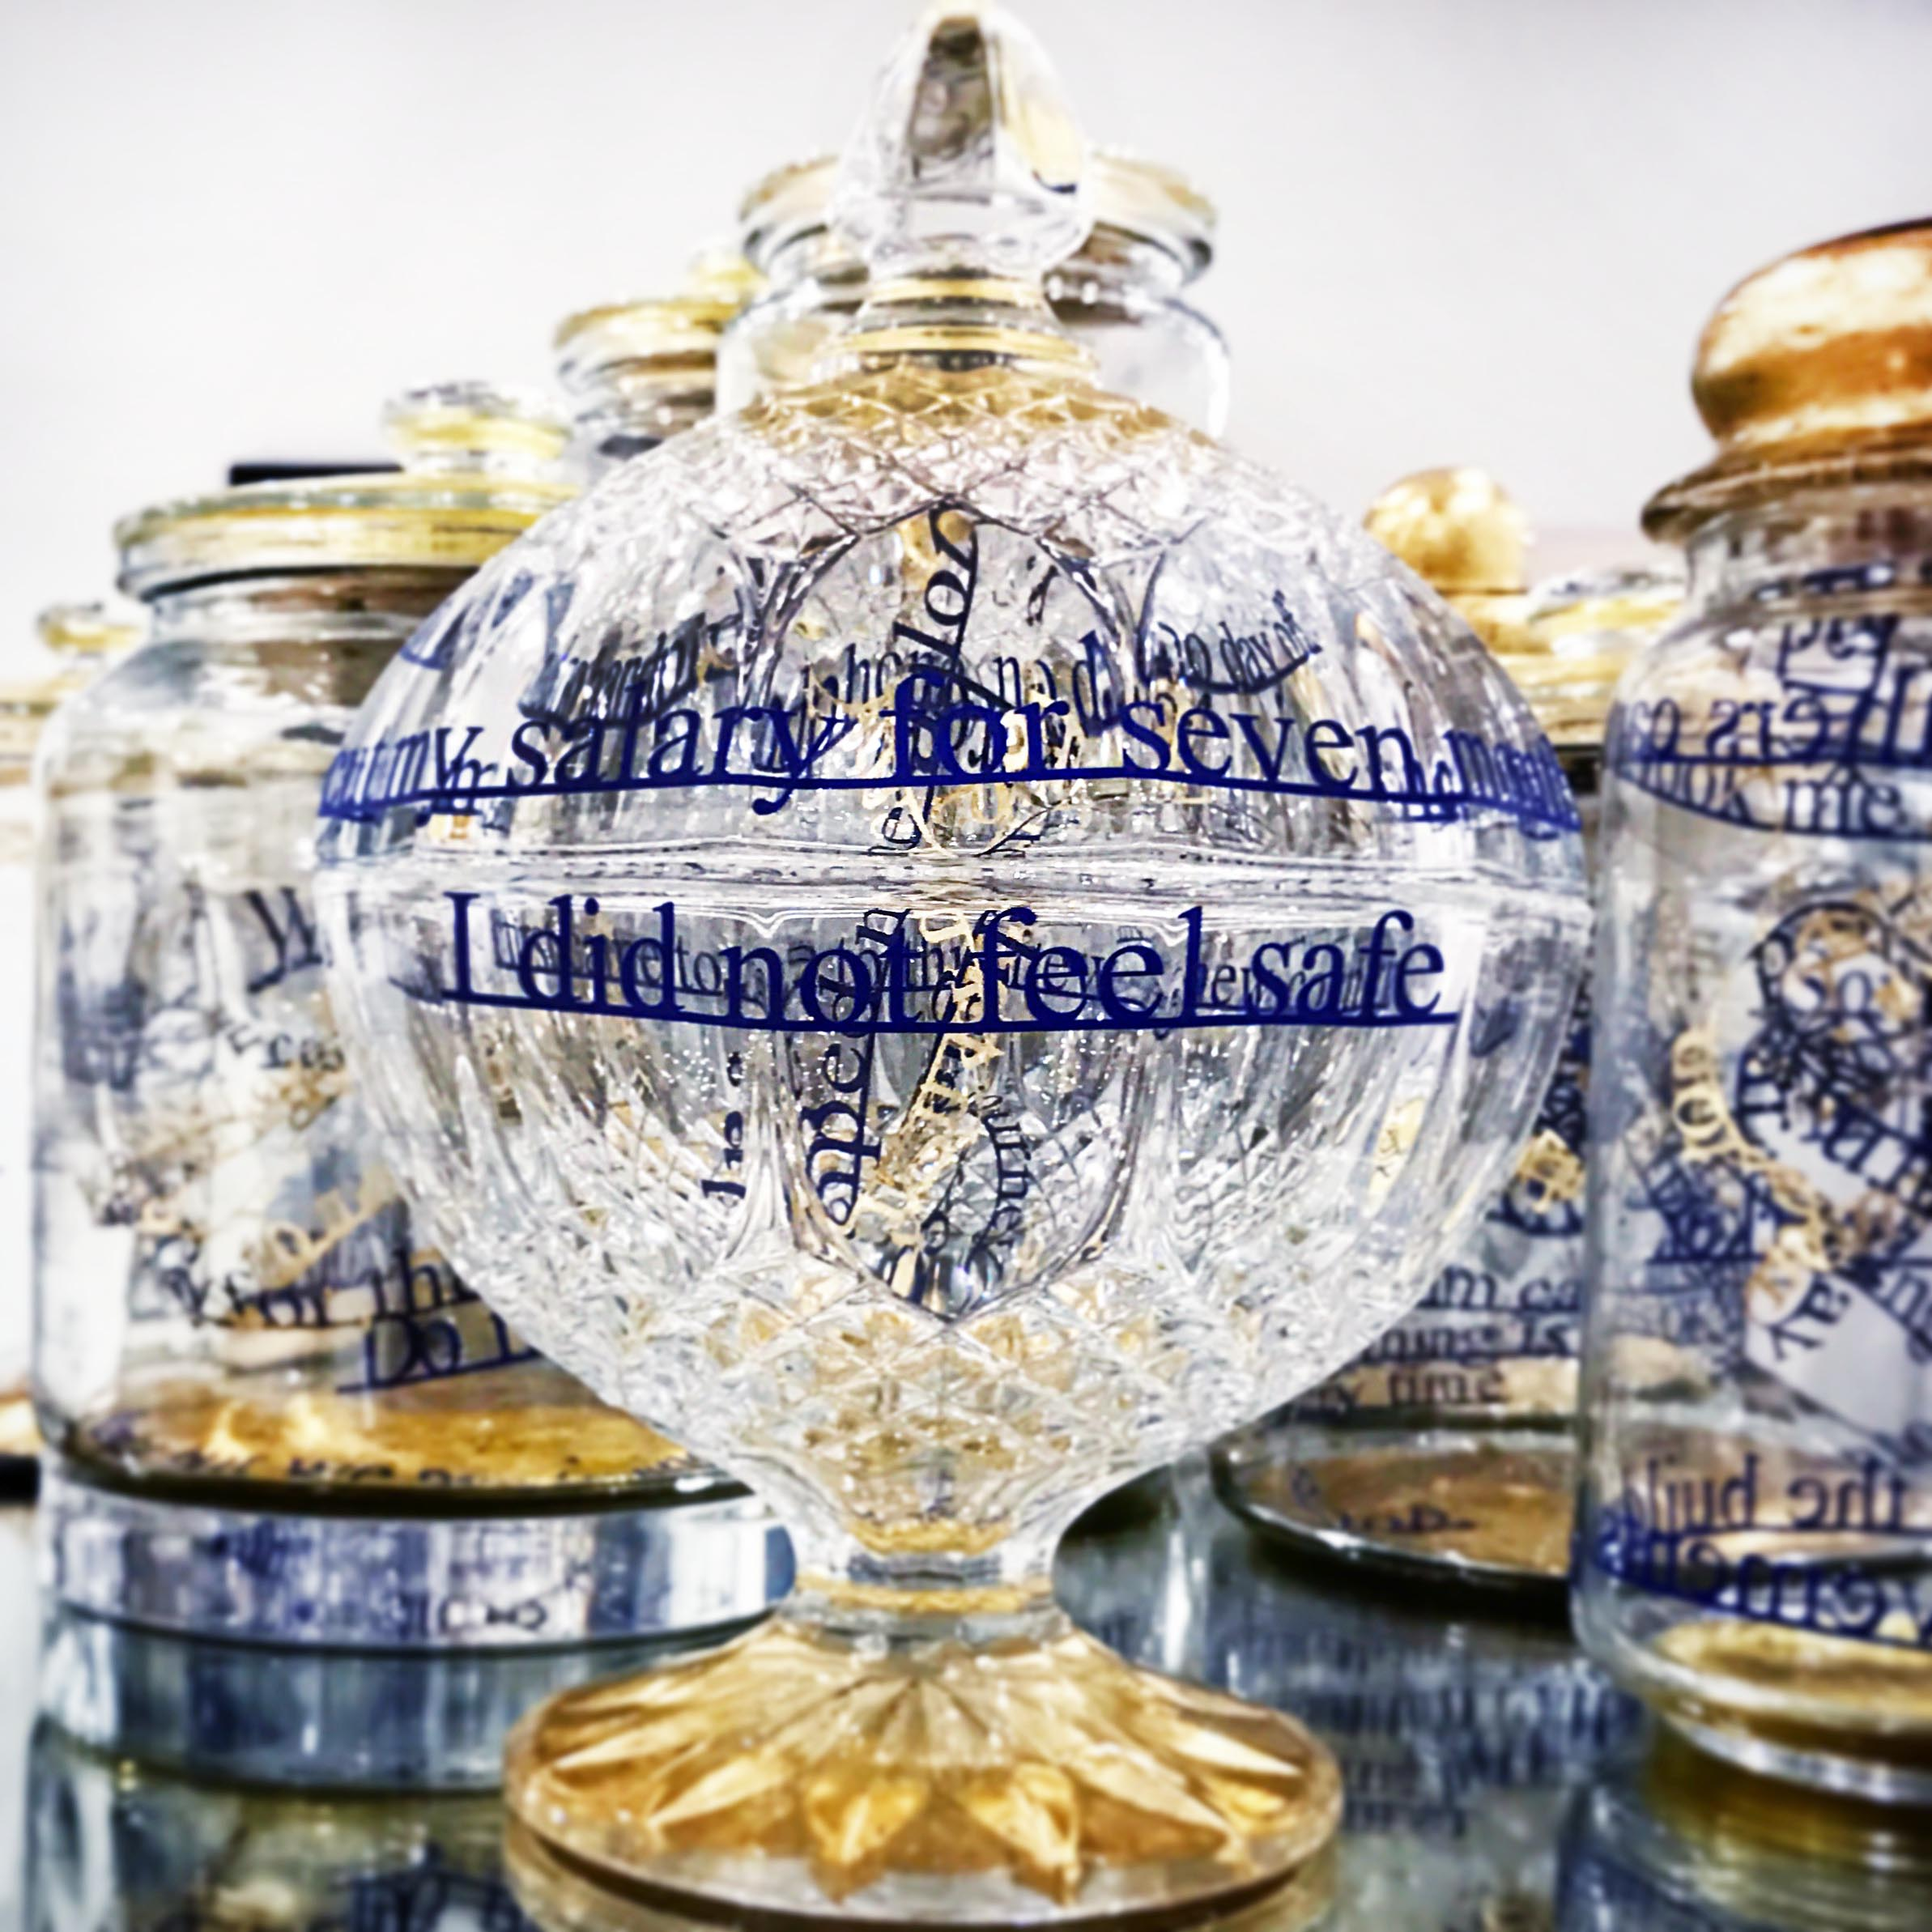 one jar, Borders are a Human Construct_(c) Nicola Anthony, 2017 - kinetic sculpture in Sovereign Art Prize 2018_web.jpg